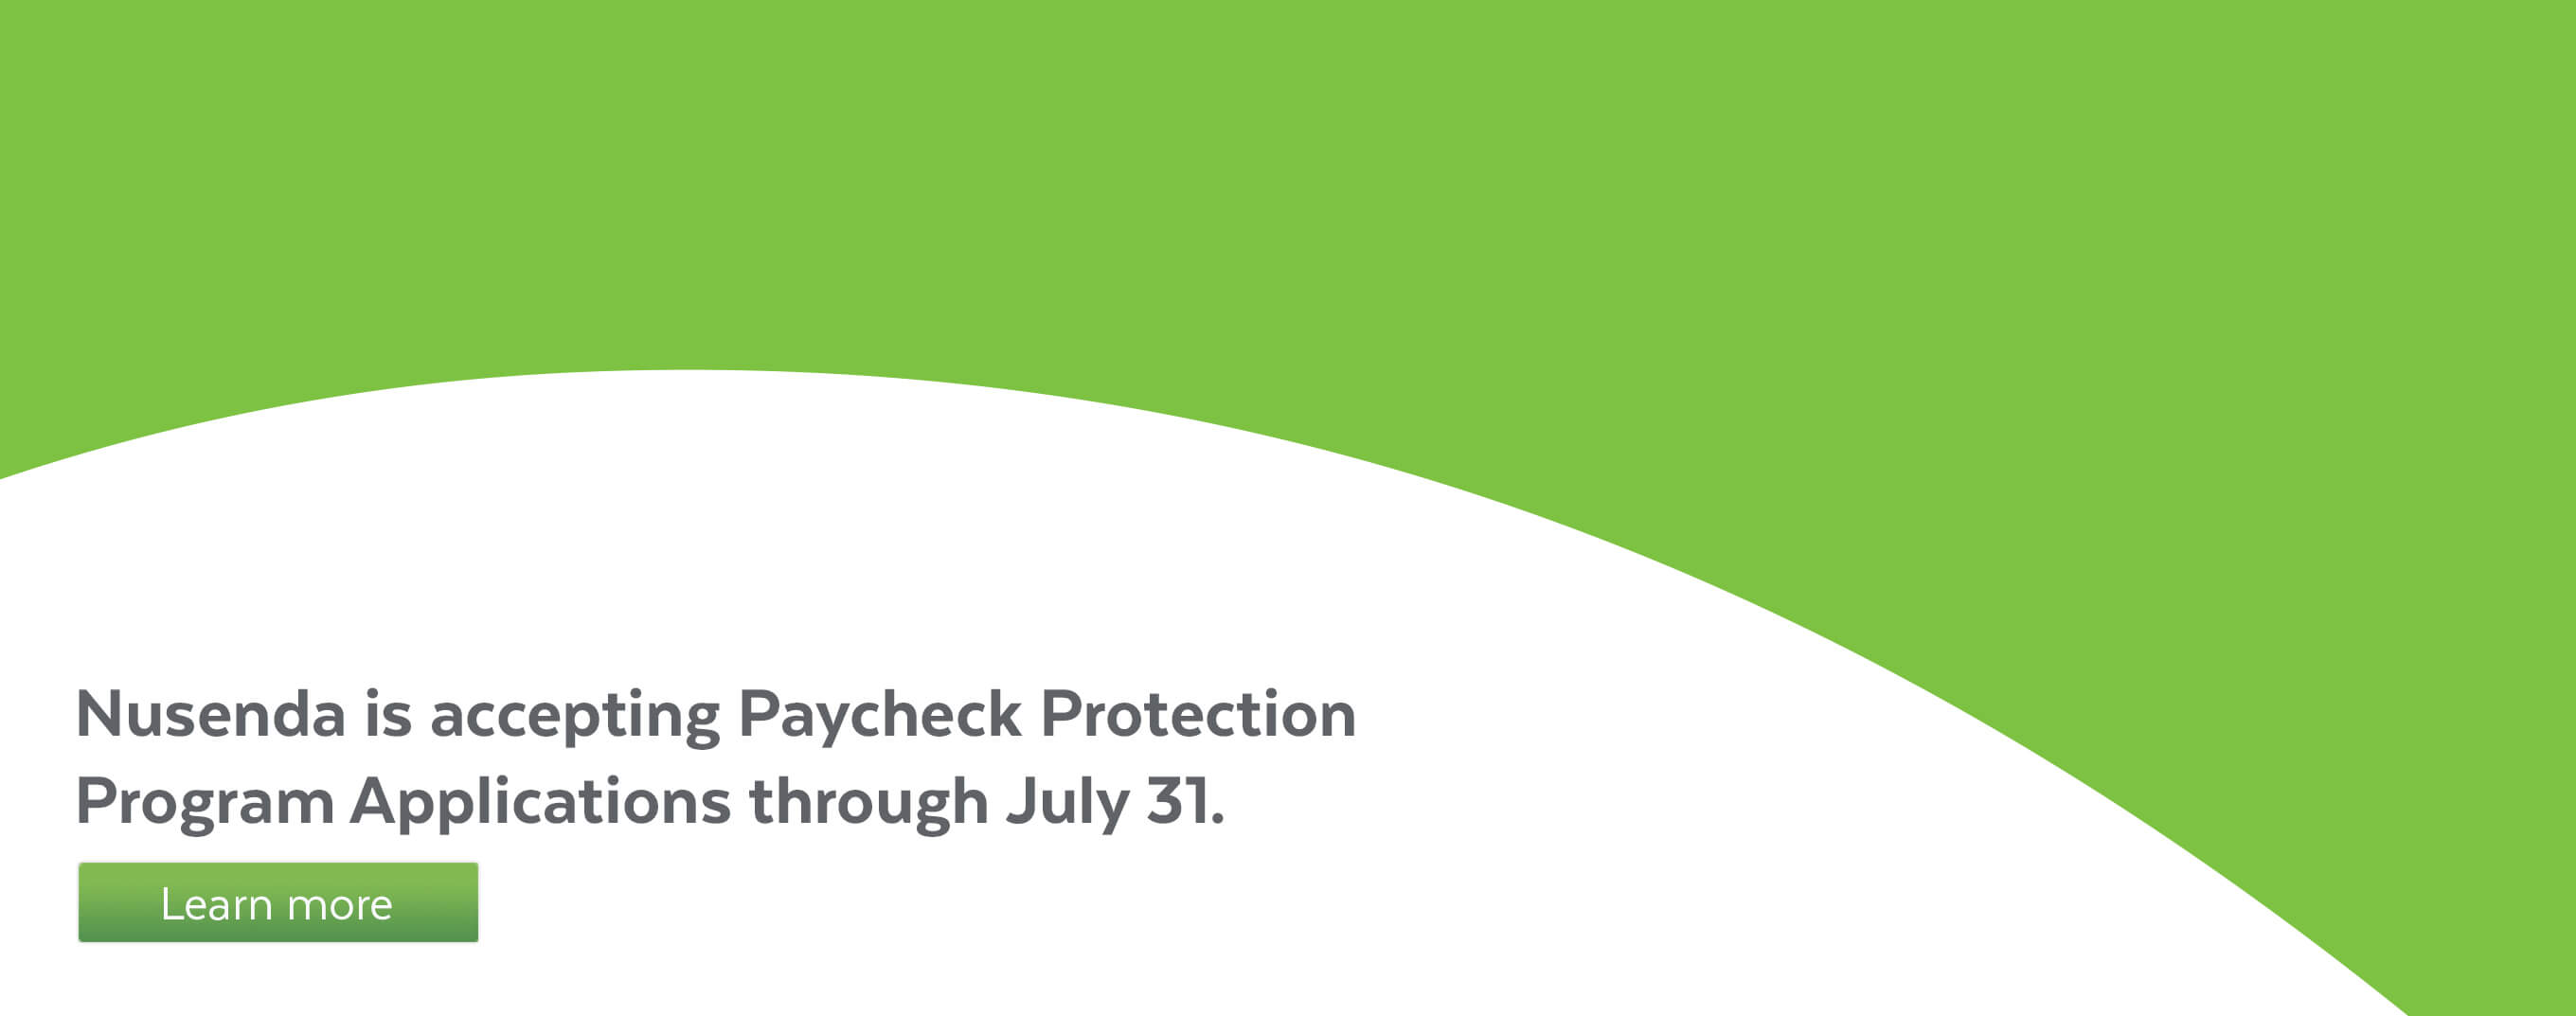 Nusenda is accepting Paycheck Protection Program applications through July 31.